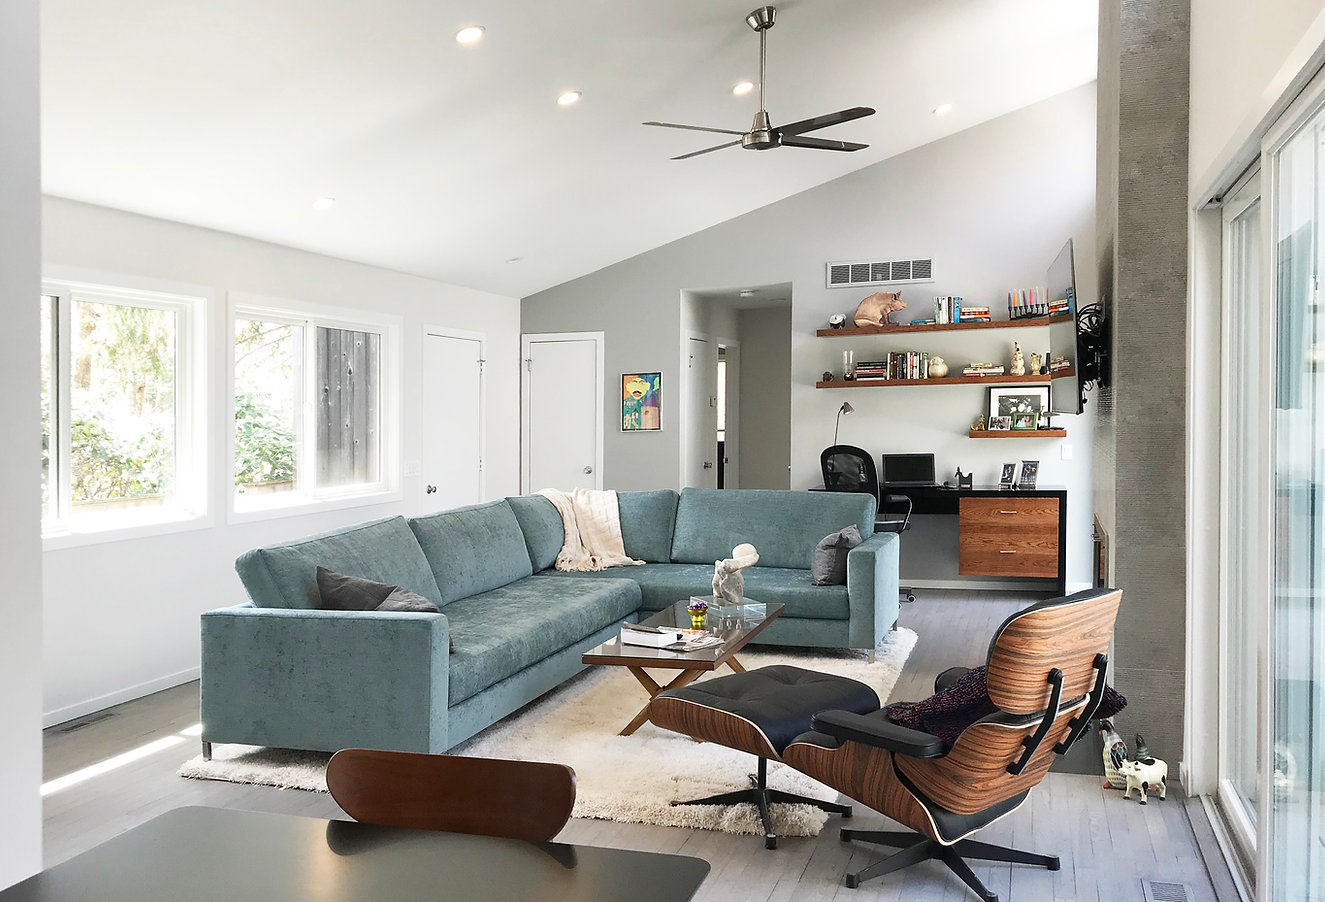 Midcentury modern design hamptons, blue sectional, teal couch, eames chair, accent walls, whit shag rug